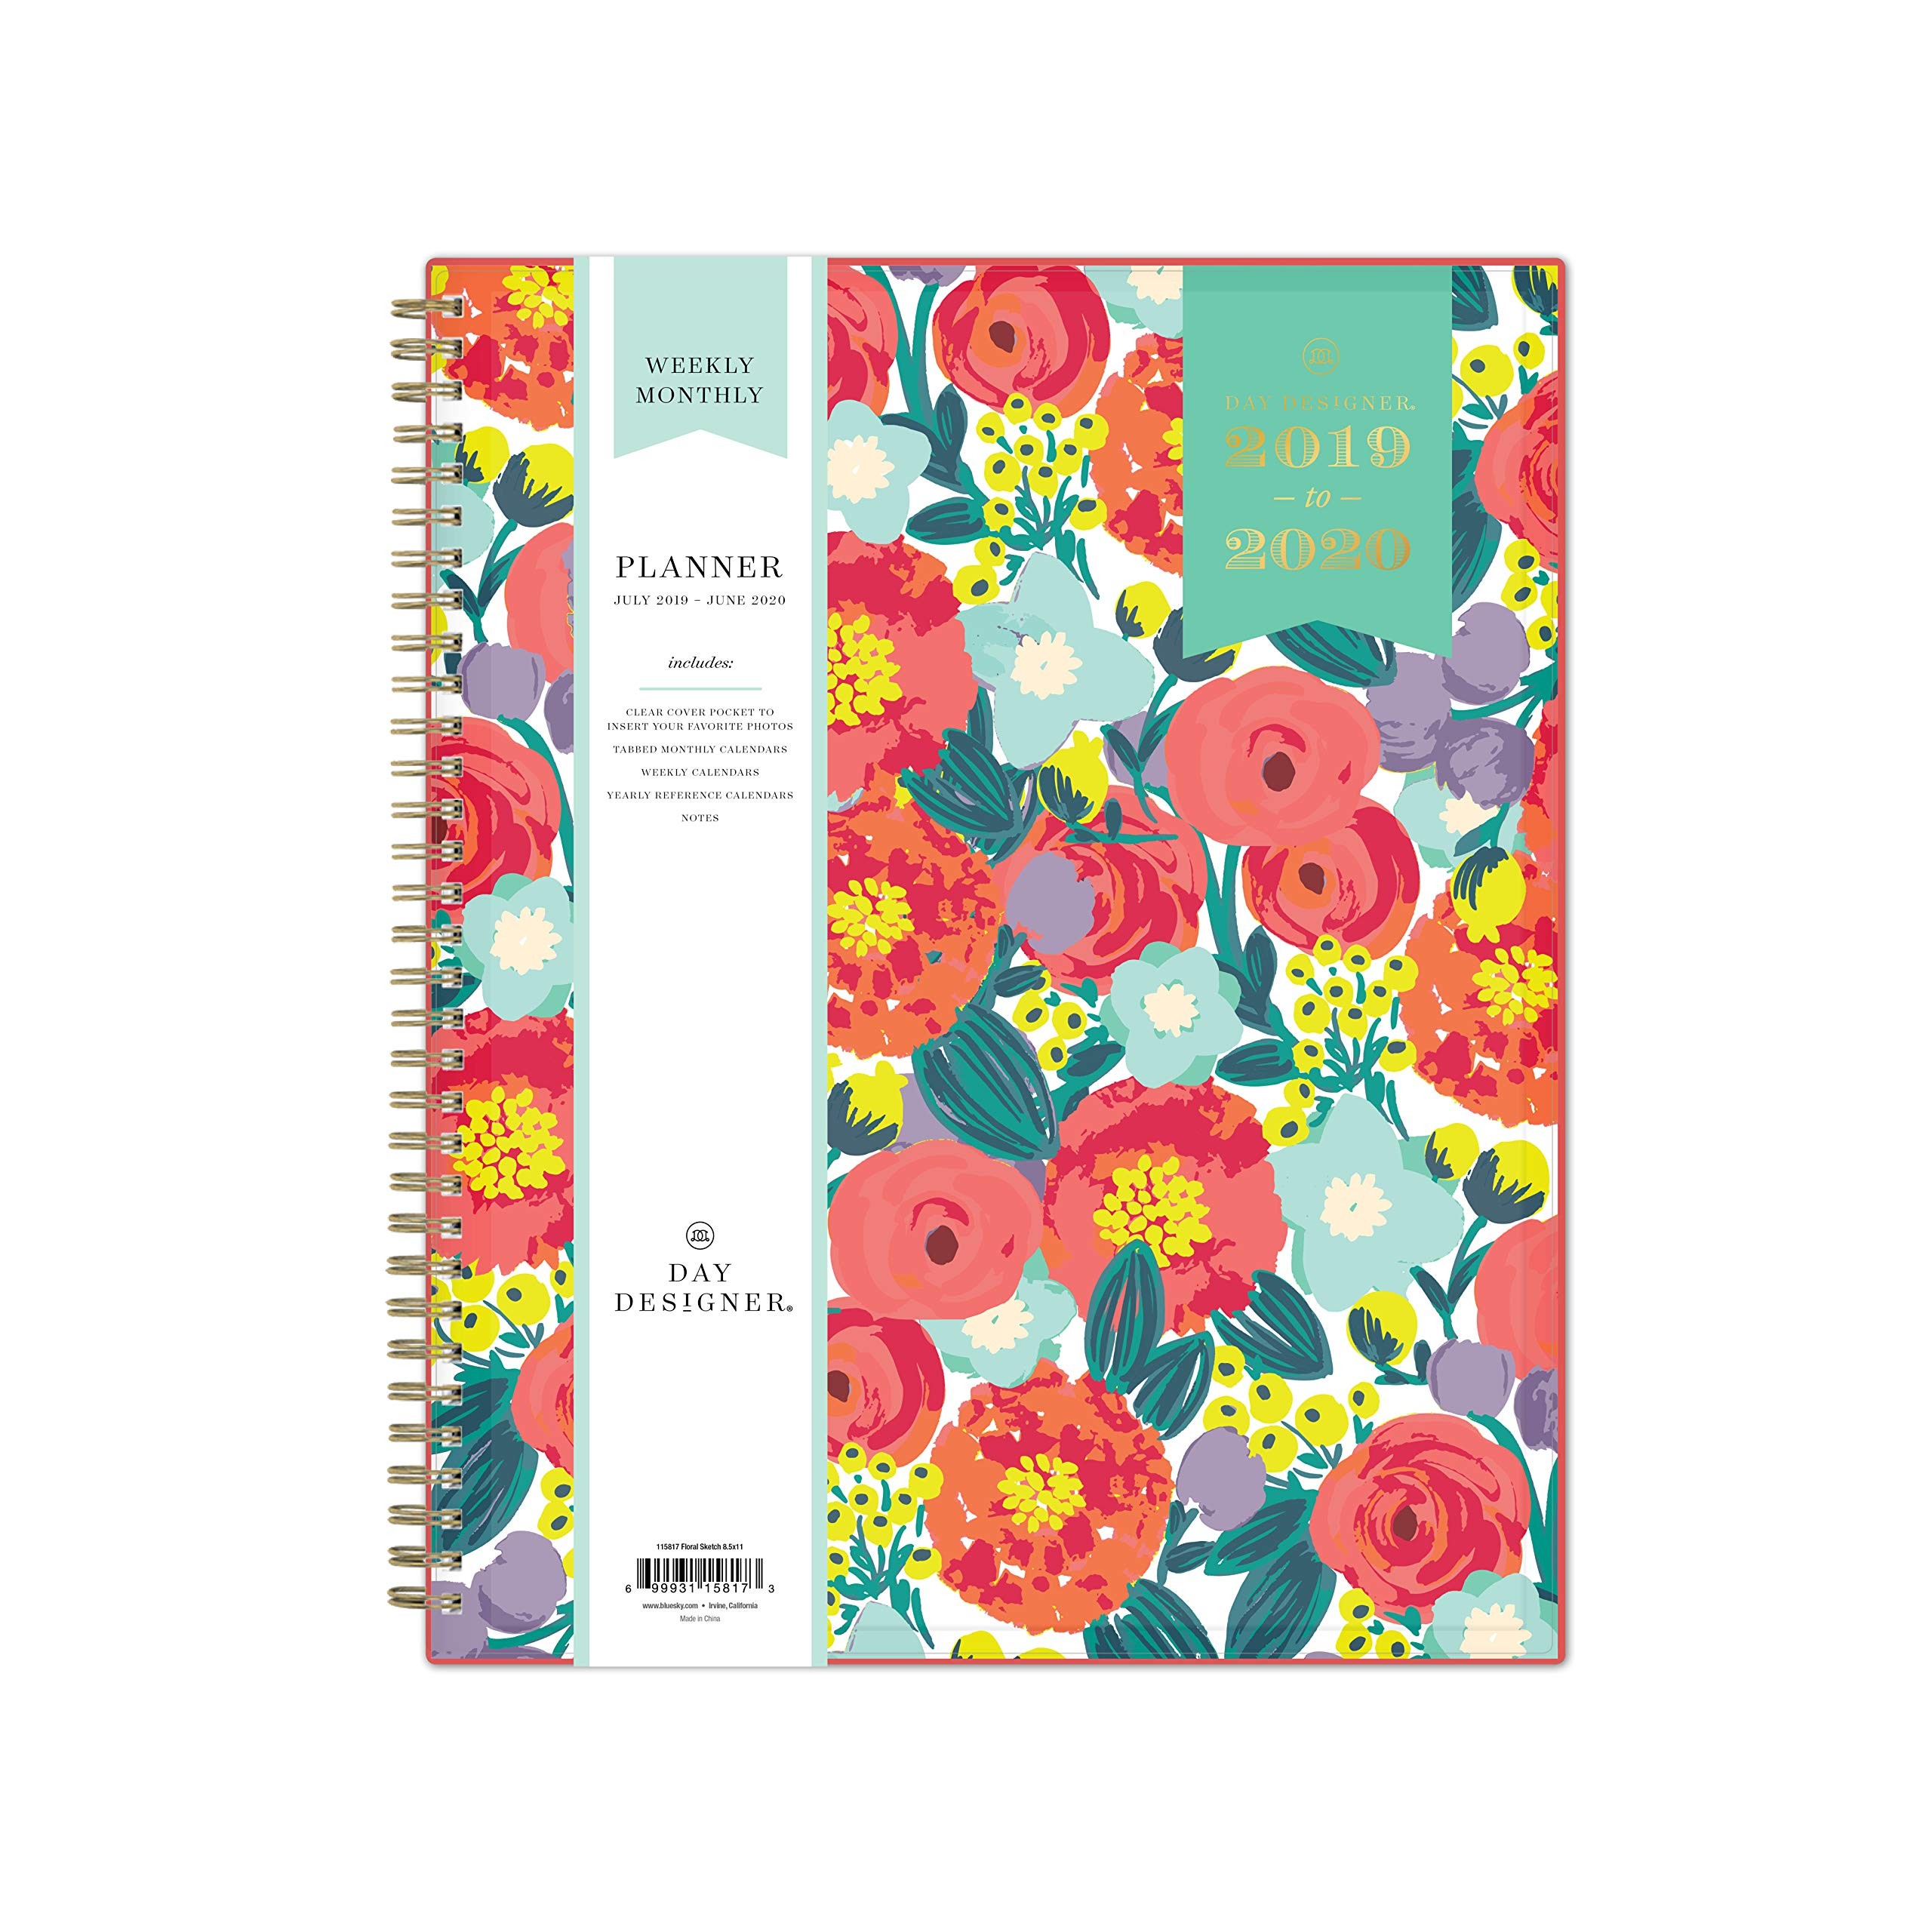 Day Designer for Blue Sky 2019-2020 Academic Year Weekly & Monthly Planner, Flexible Cover, Twin-Wire Binding, 8.5'' x 11'', Floral Sketch by Blue Sky